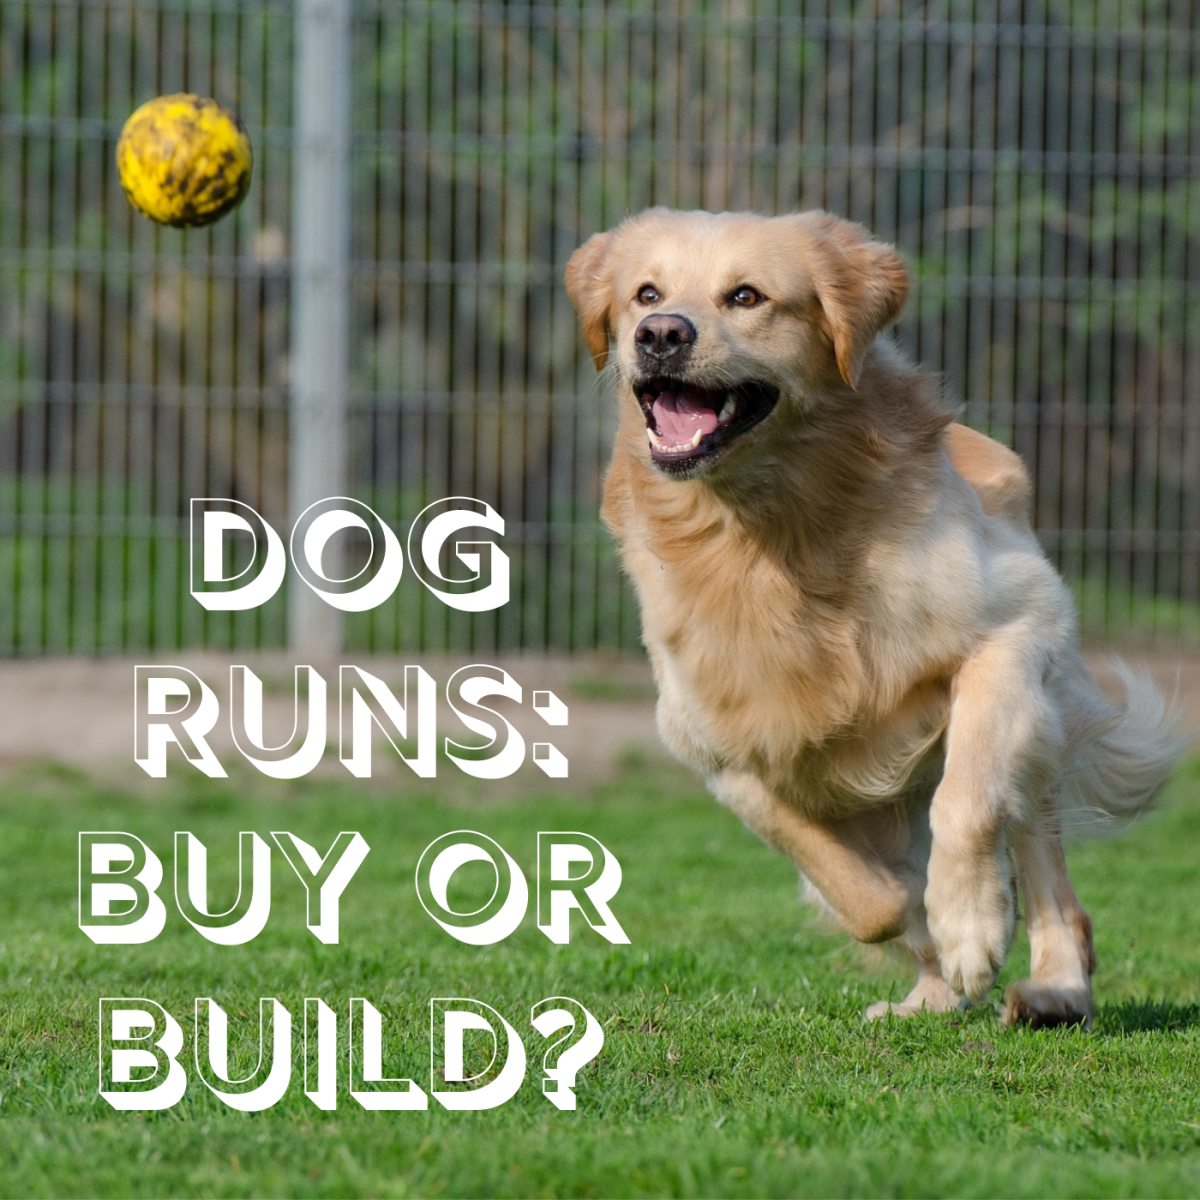 A fenced-in dog run or kennel gives your pooch a safe place to exercise outside. Learn about the pros and cons of buying a prefab run versus DIYing it.